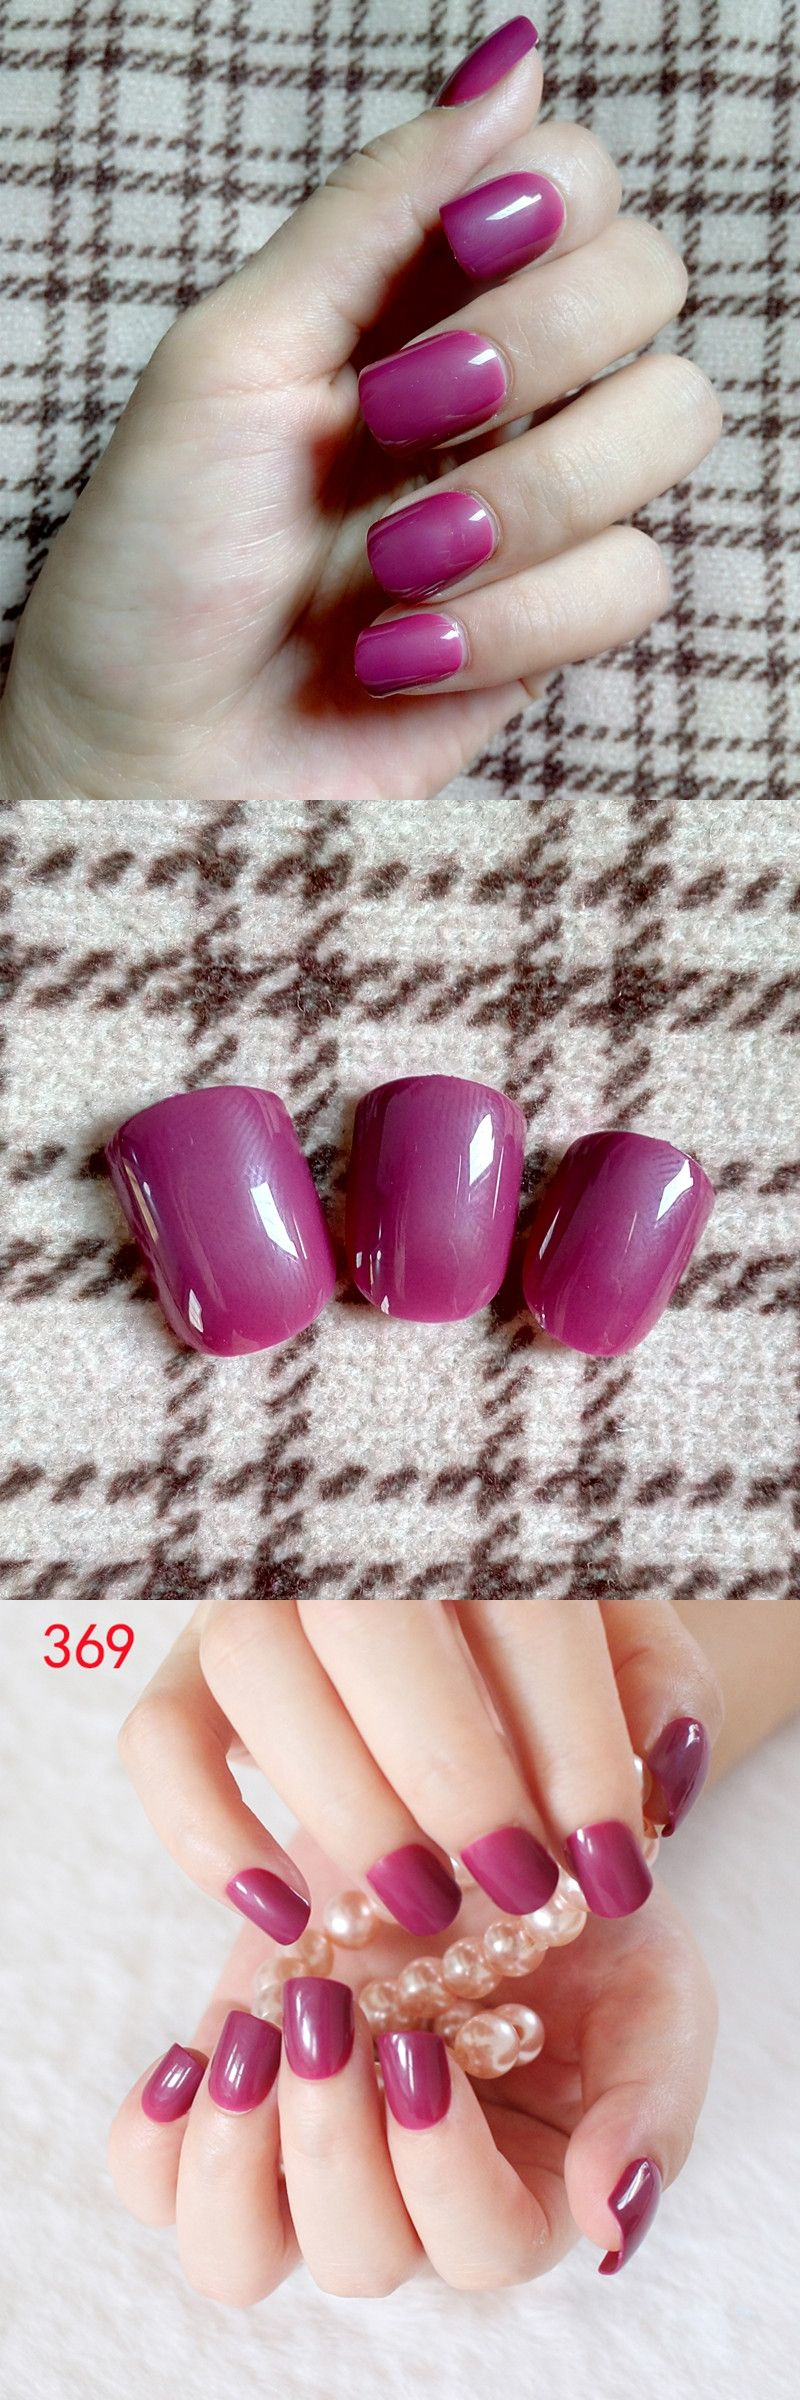 24Pcs Classic Shape Flat Fake Finger Nails Pretty Dark Rose Acrylic ...